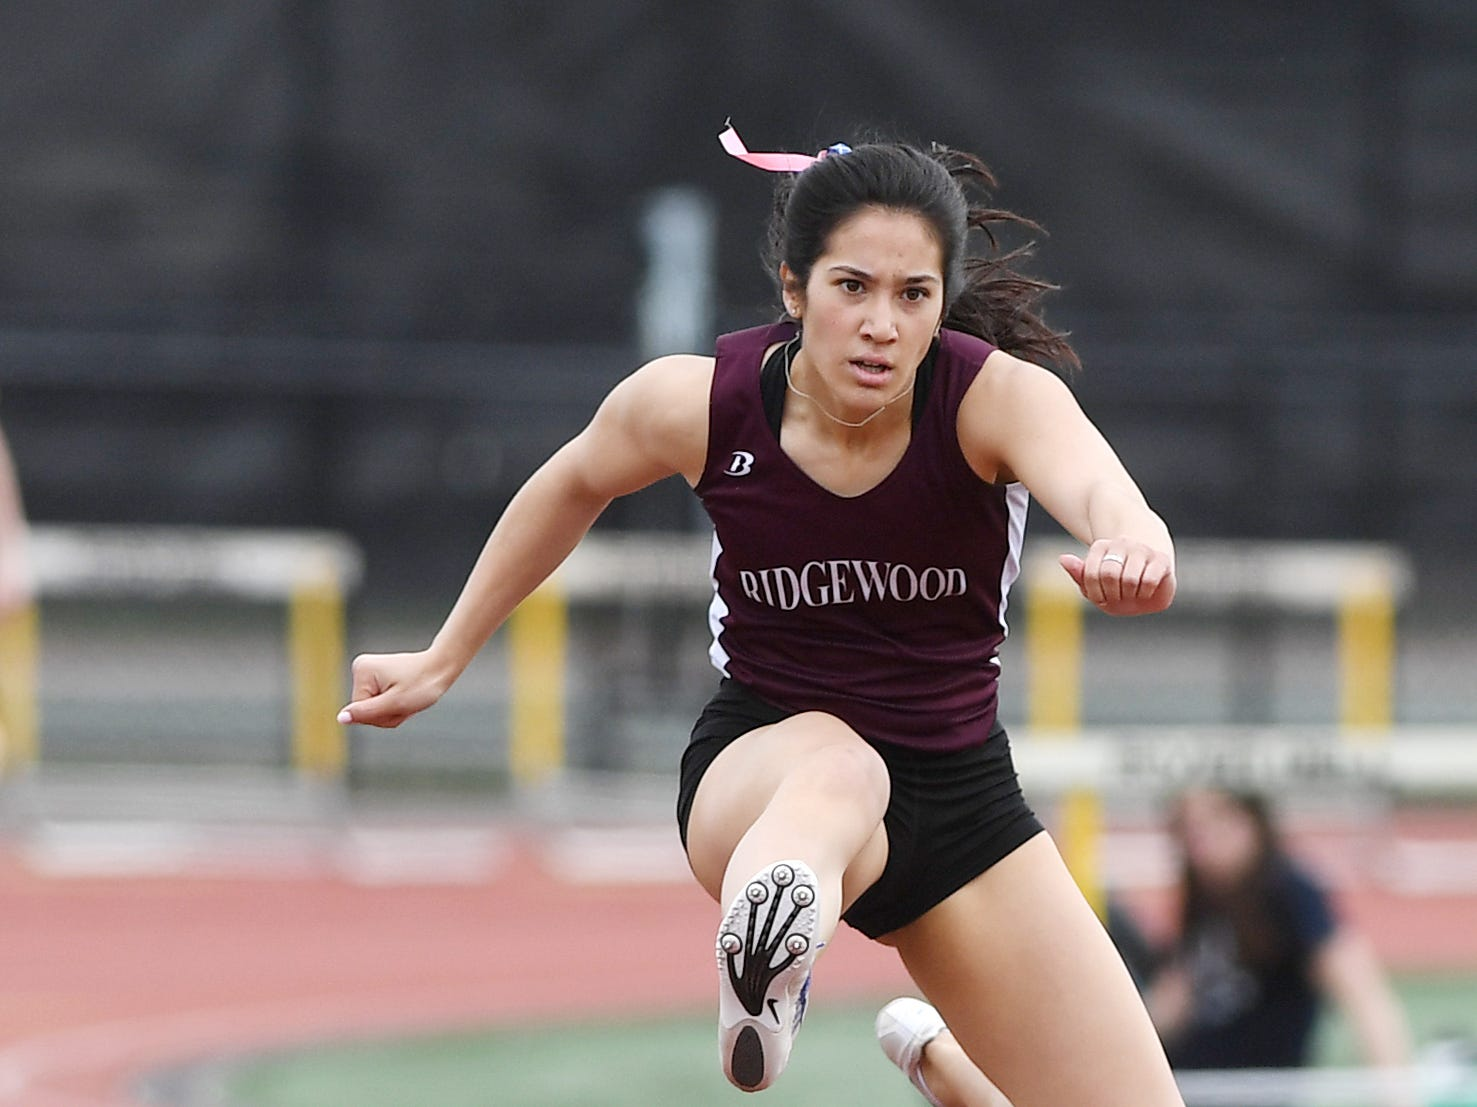 Bergen County Relays at River Dell H.S in Oradell on Friday, April 12, 2019. Katherine Muccio, of Ridgewood, in the 3 X 400 Hurdles.